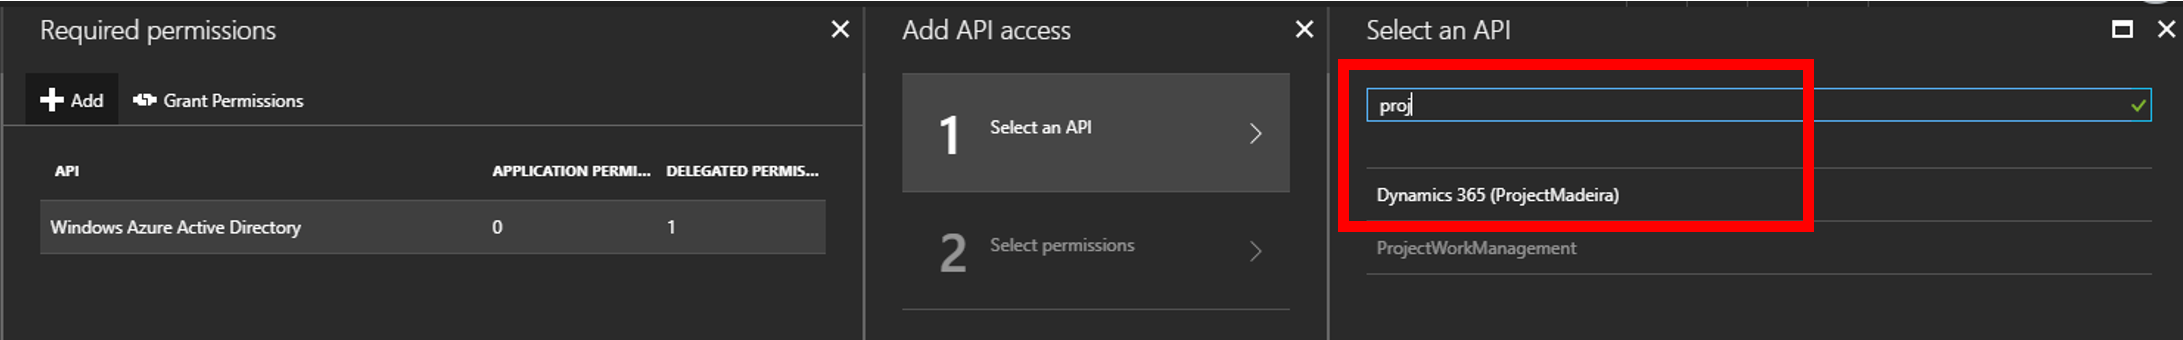 Has anybody used any of the Dynamics 365 integration endpoints